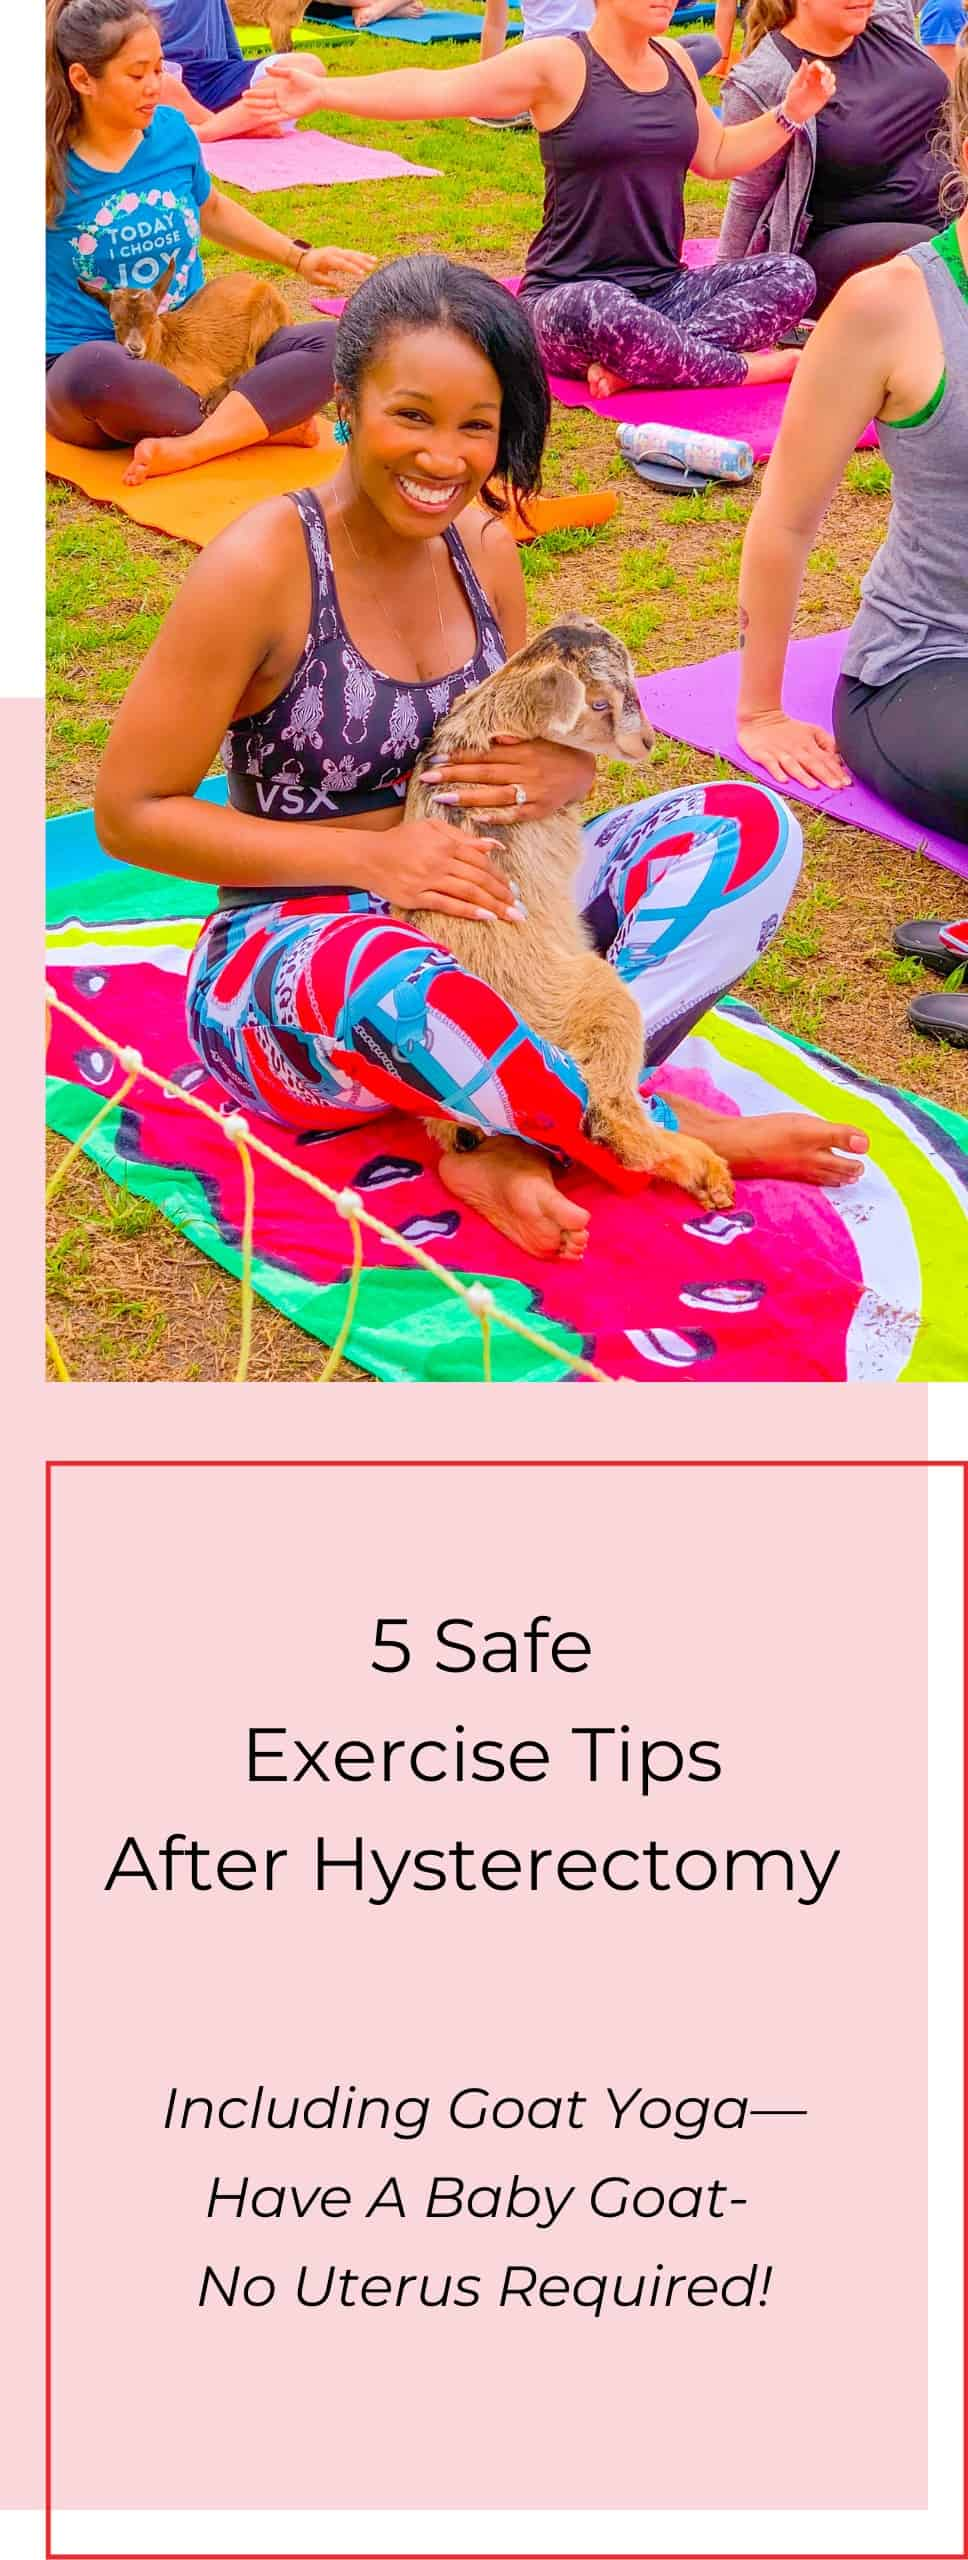 5 Safe Exercise Tips After Hysterectomy Including Goat Yoga- Have A Baby Goat- No Uterus Required!